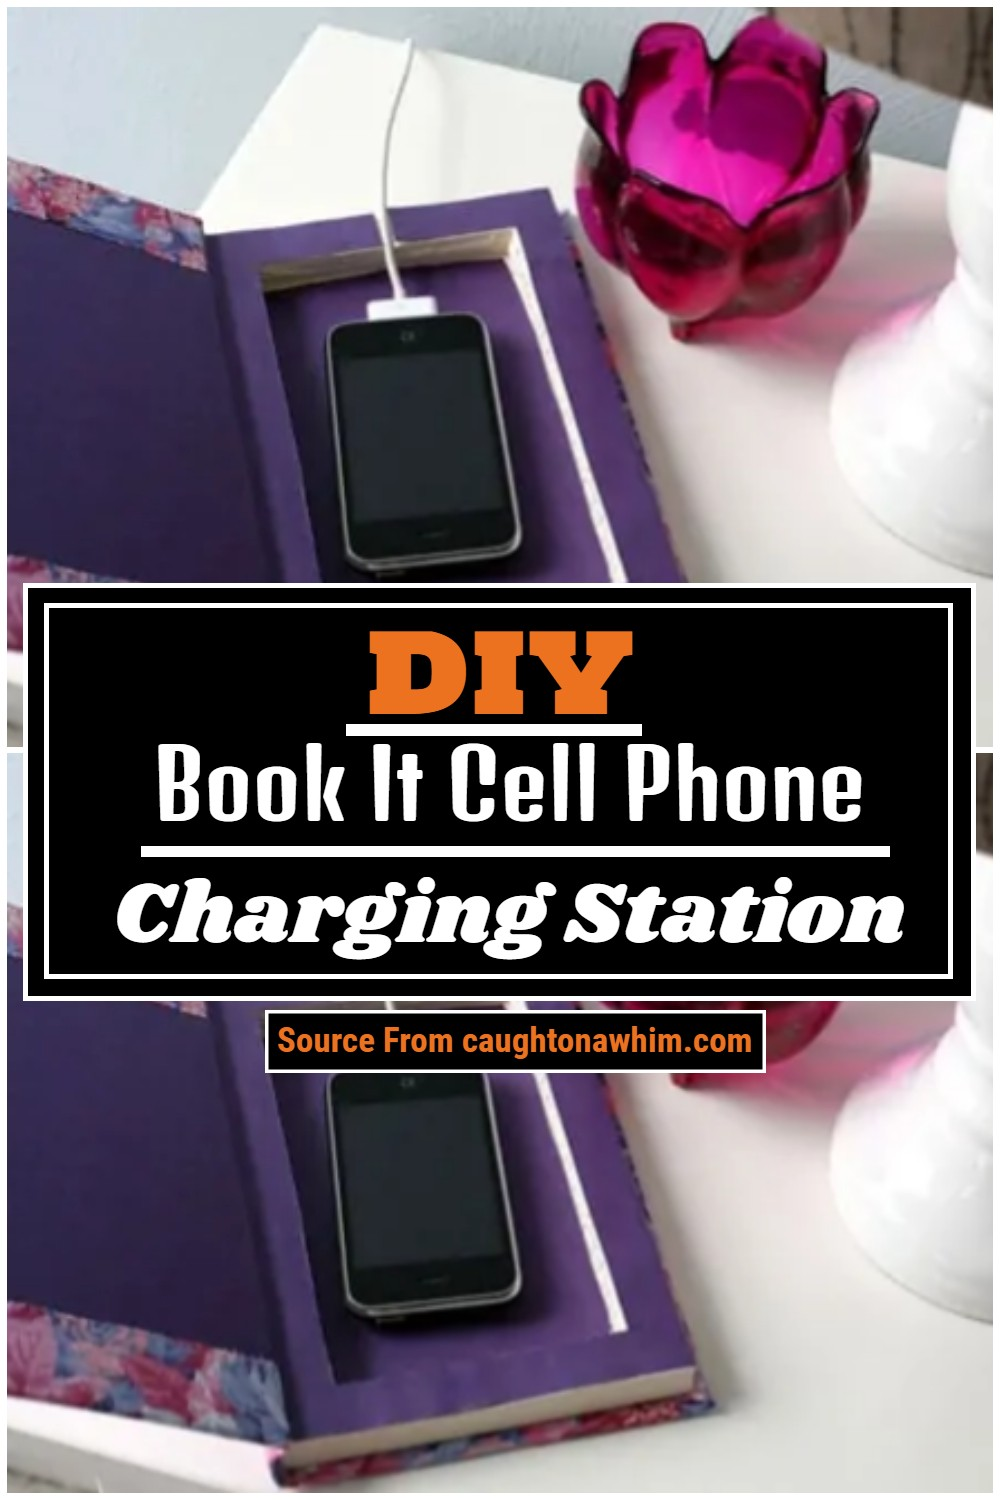 DIY Book It Cell Phone Charging Station